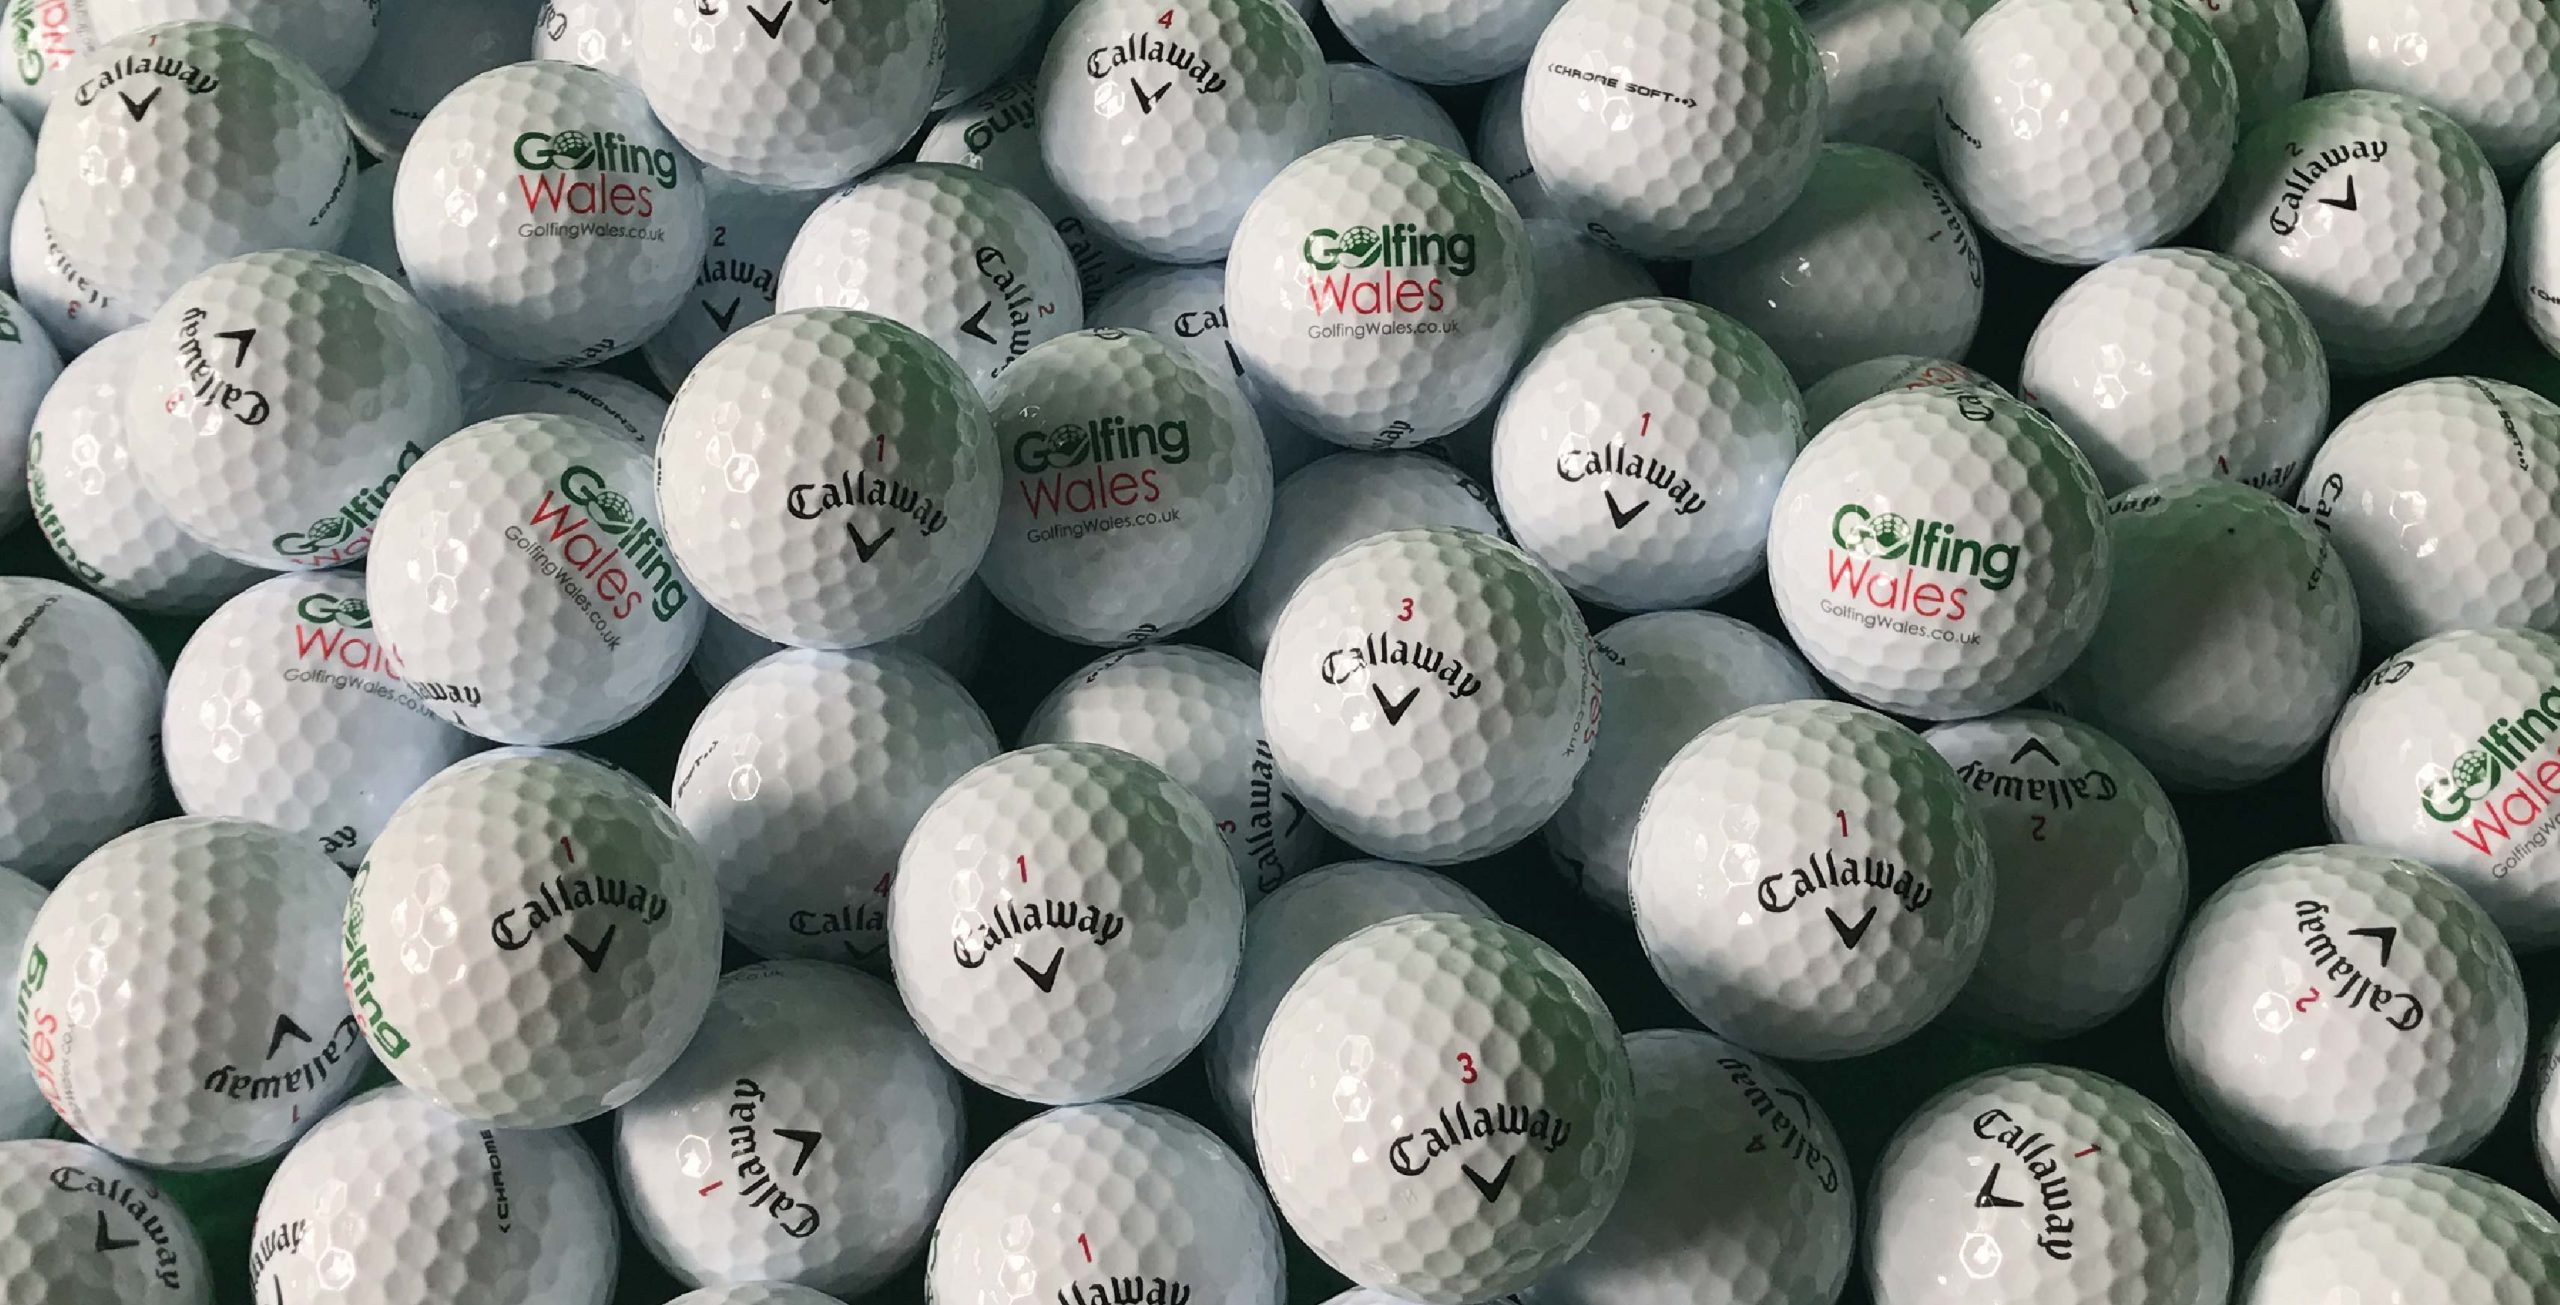 Submit your scores to win Callaway Chrome Soft Balls